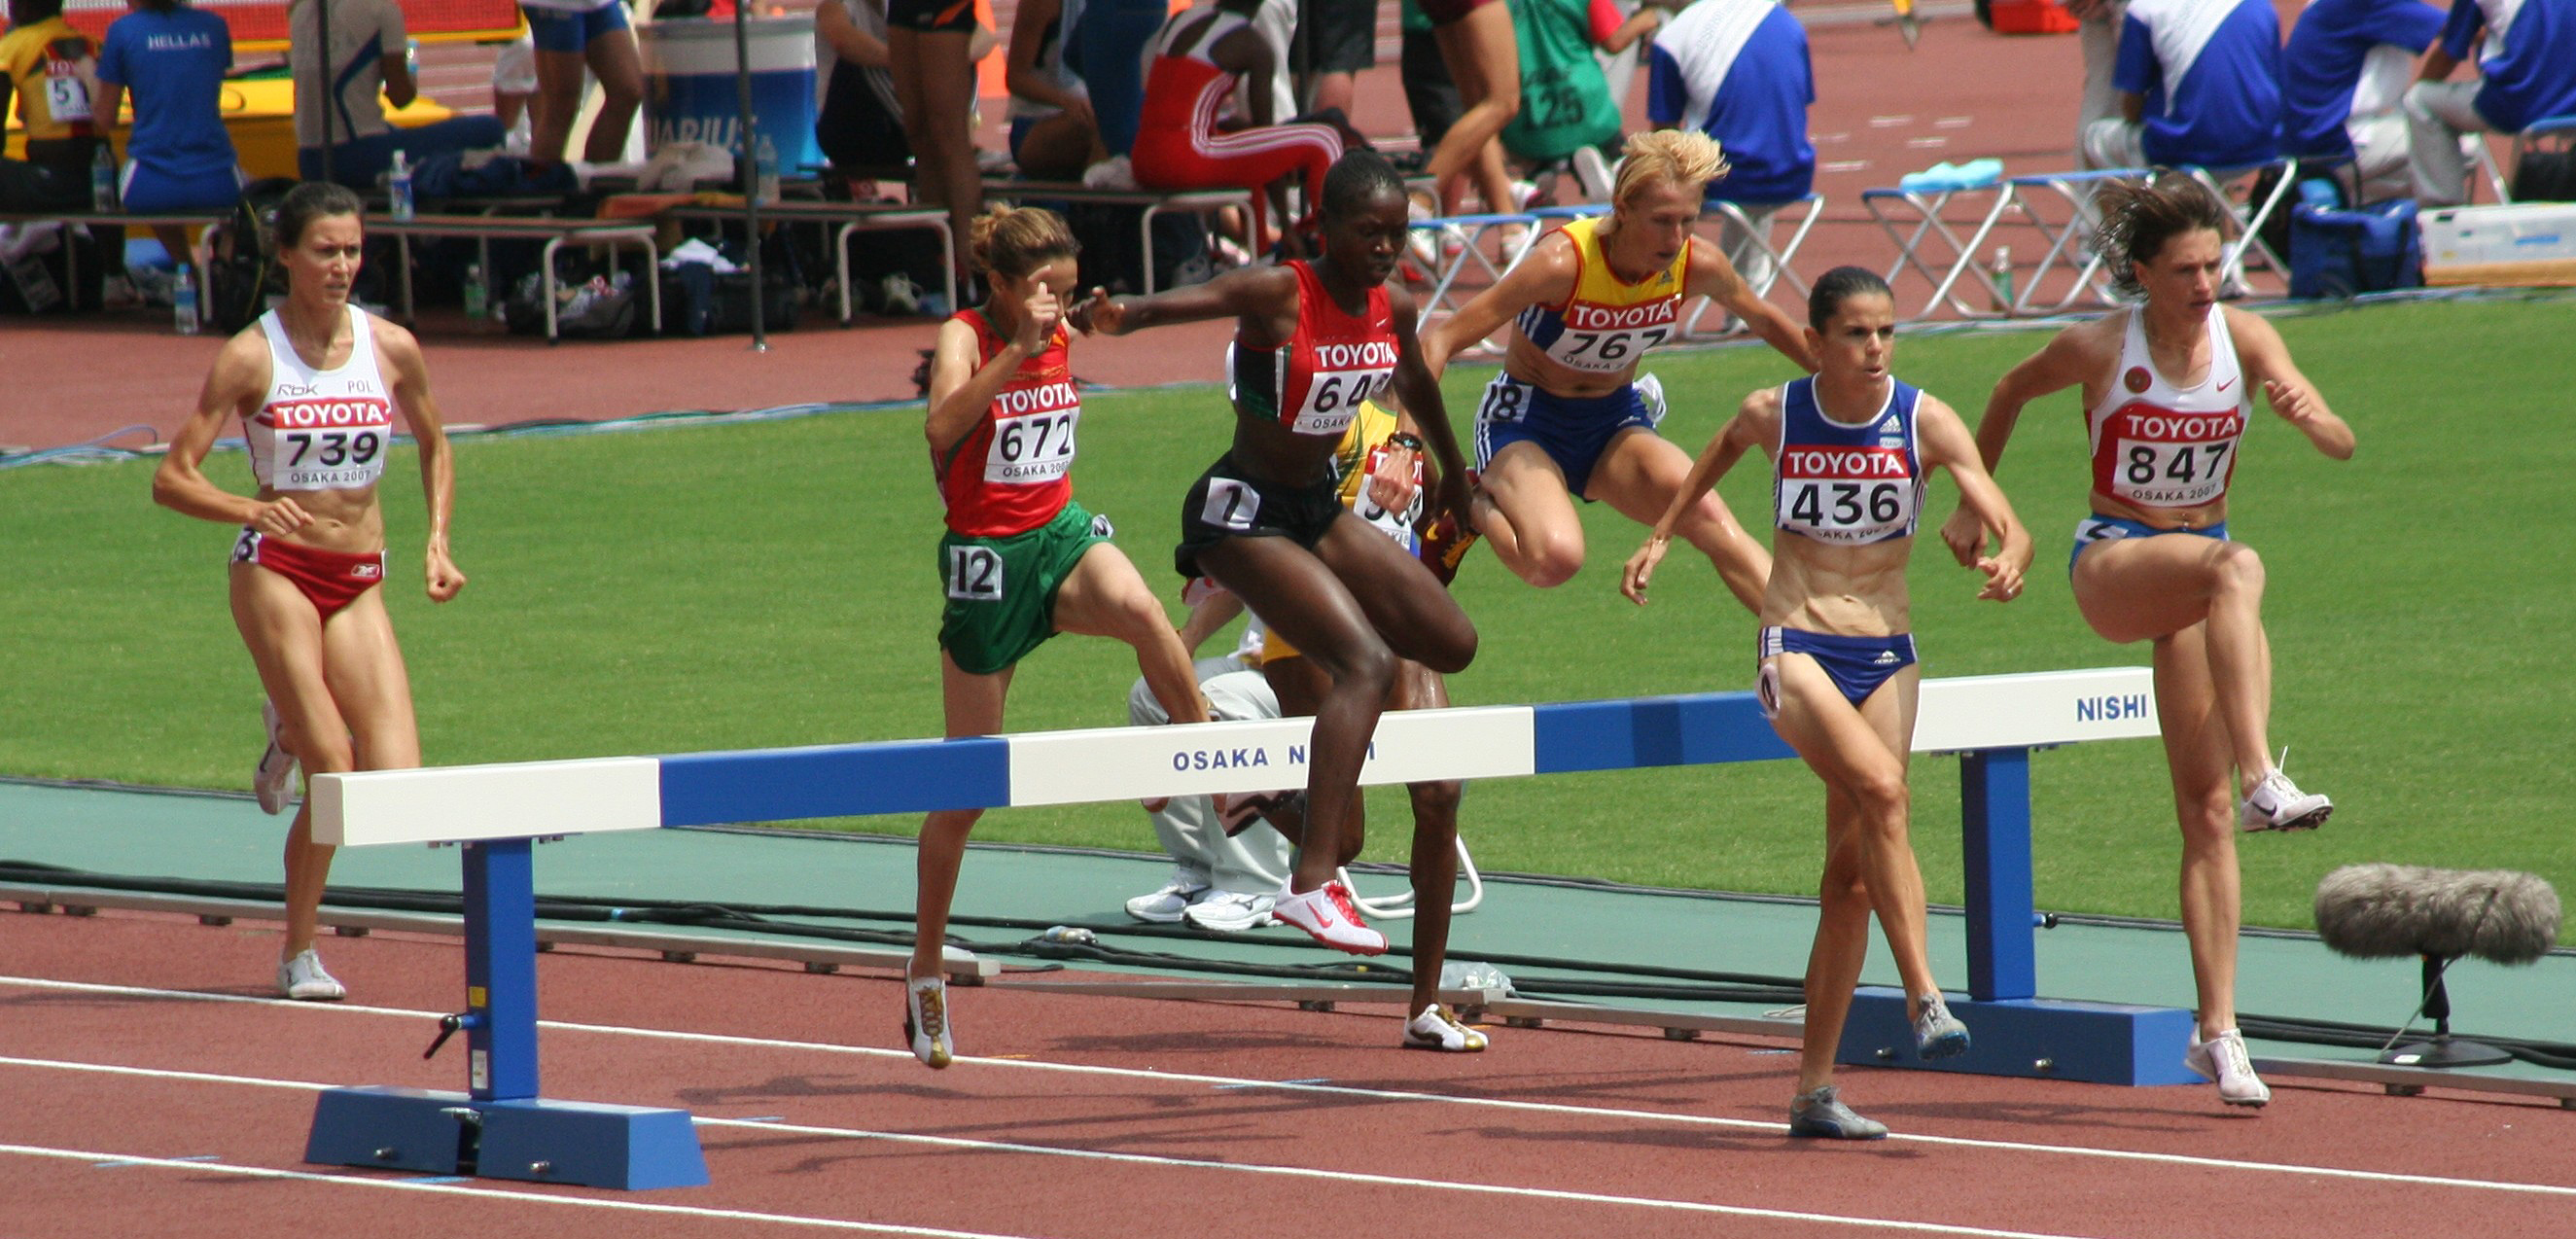 File:Osaka07 D1M W3000M Steeplechase Heat.jpg - Wikimedia Commons